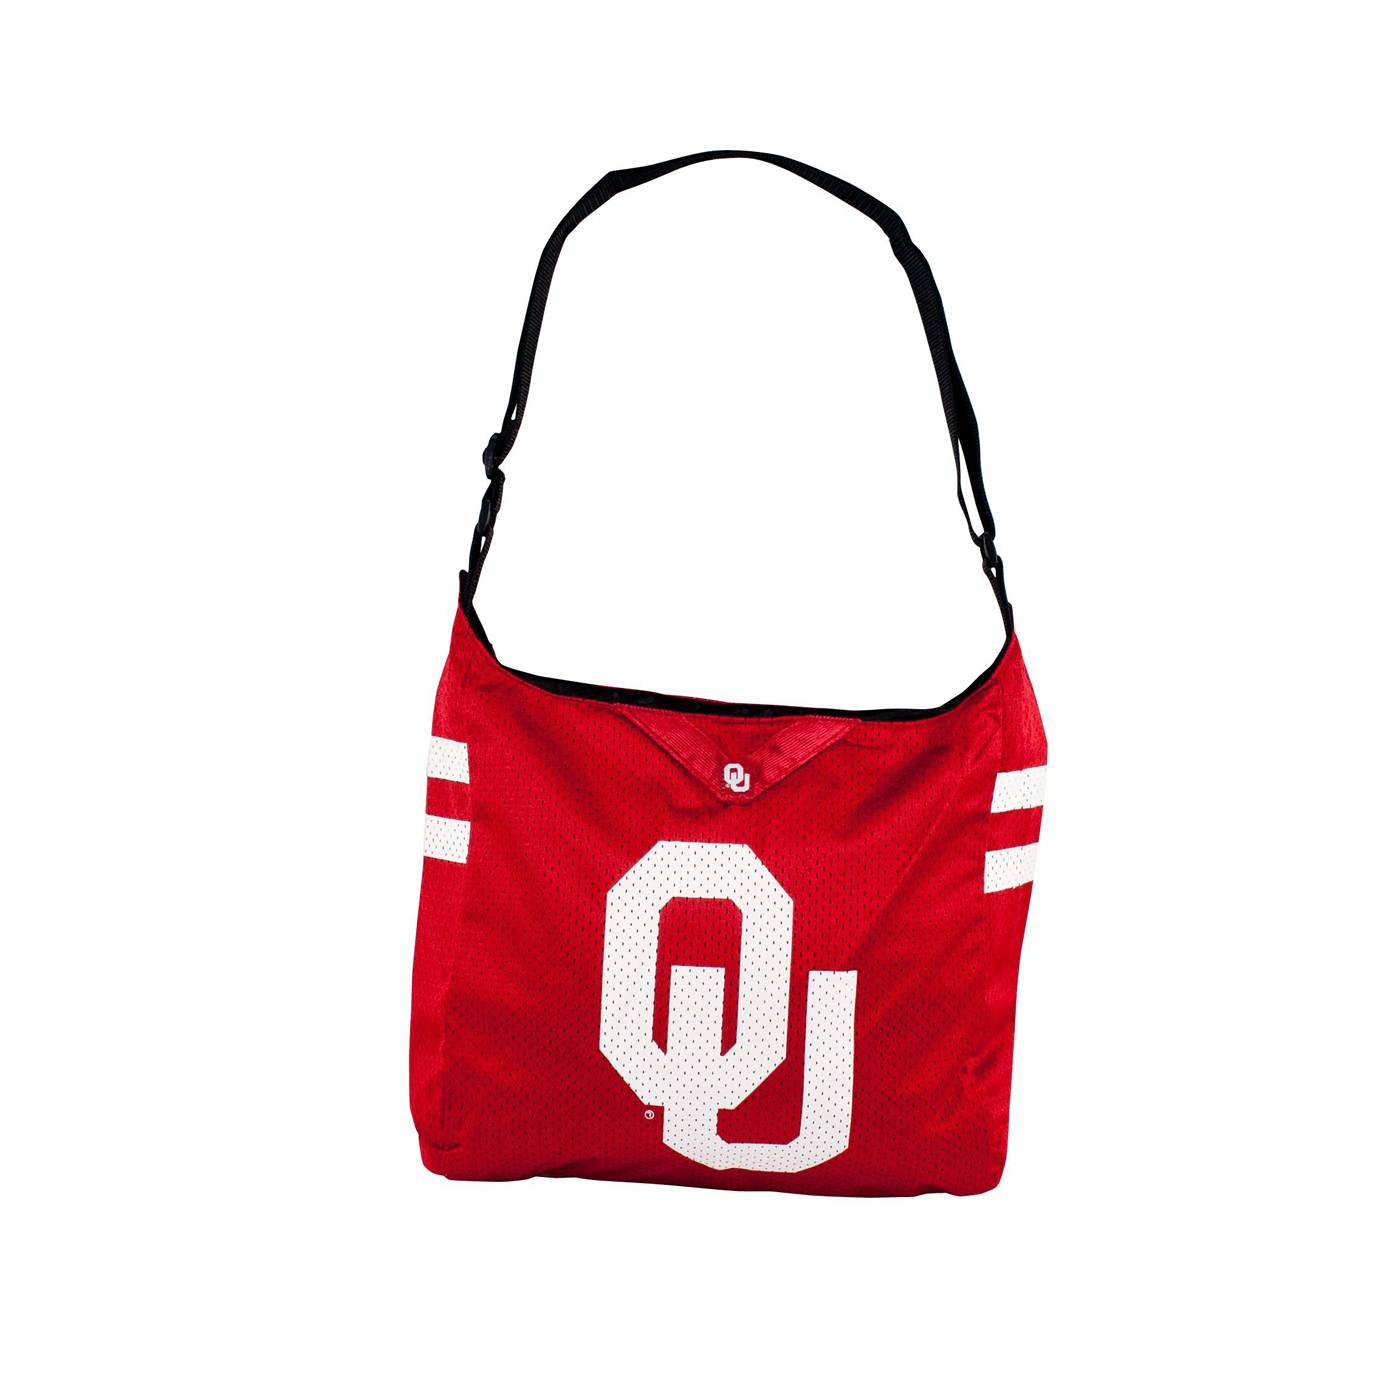 Bags is located in Oklahoma City, Oklahoma. This organization primarily operates in the Plastic Bags: Made From Purchased Materials business / industry within the Paper and Allied Products sector.